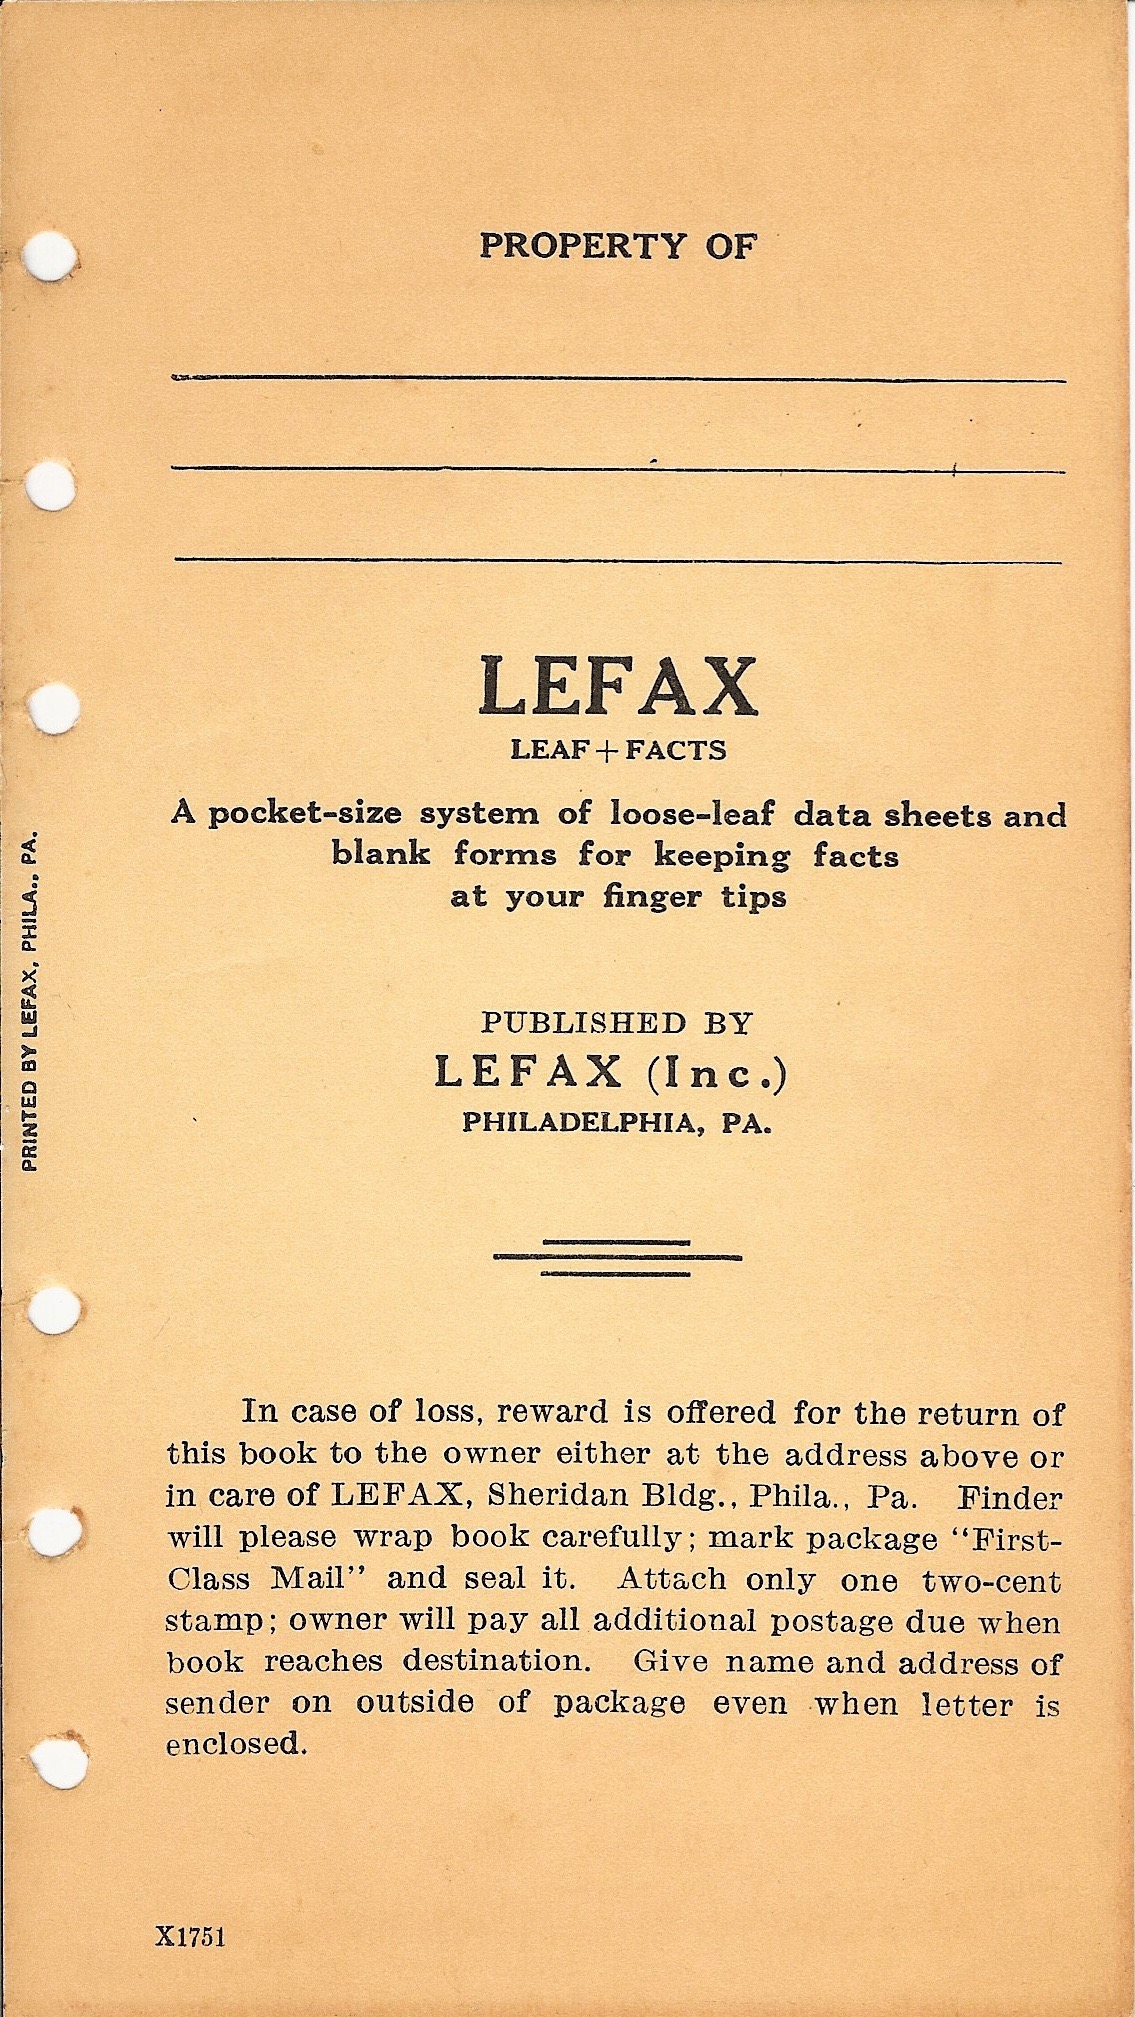 Lefax 1928 Catalogue and Radio Log